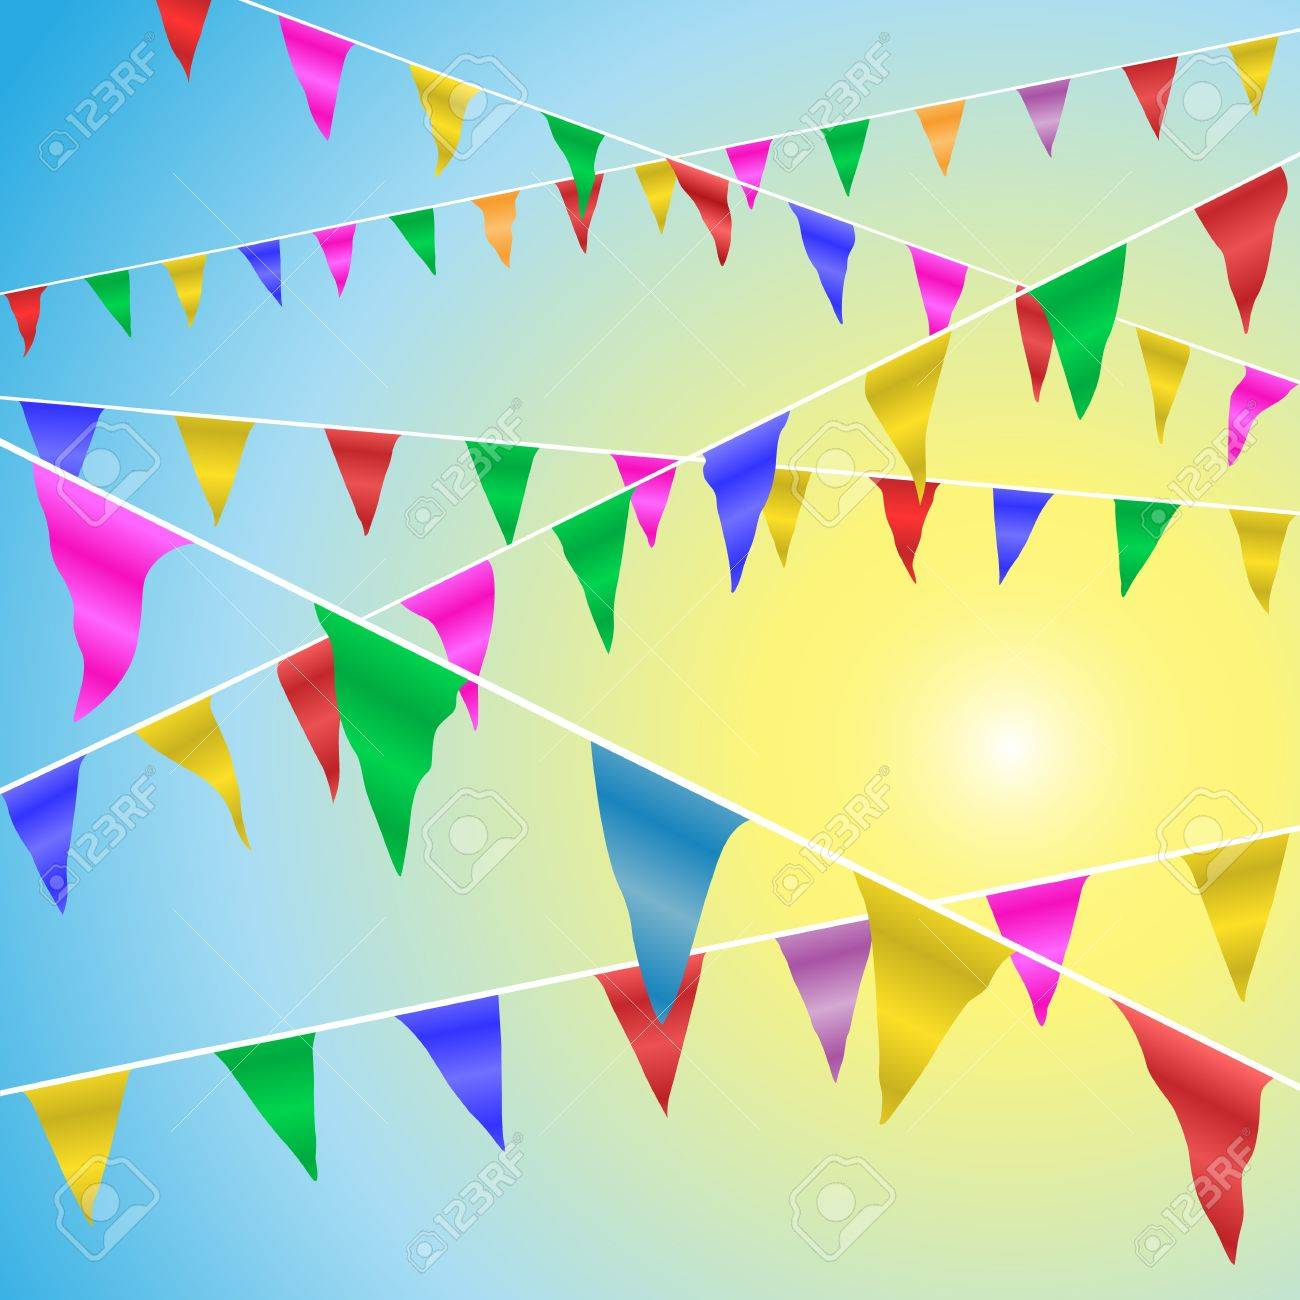 Bunting Flags Blowing in the Wind Against A Blue Sky Stock Vector - 17622448